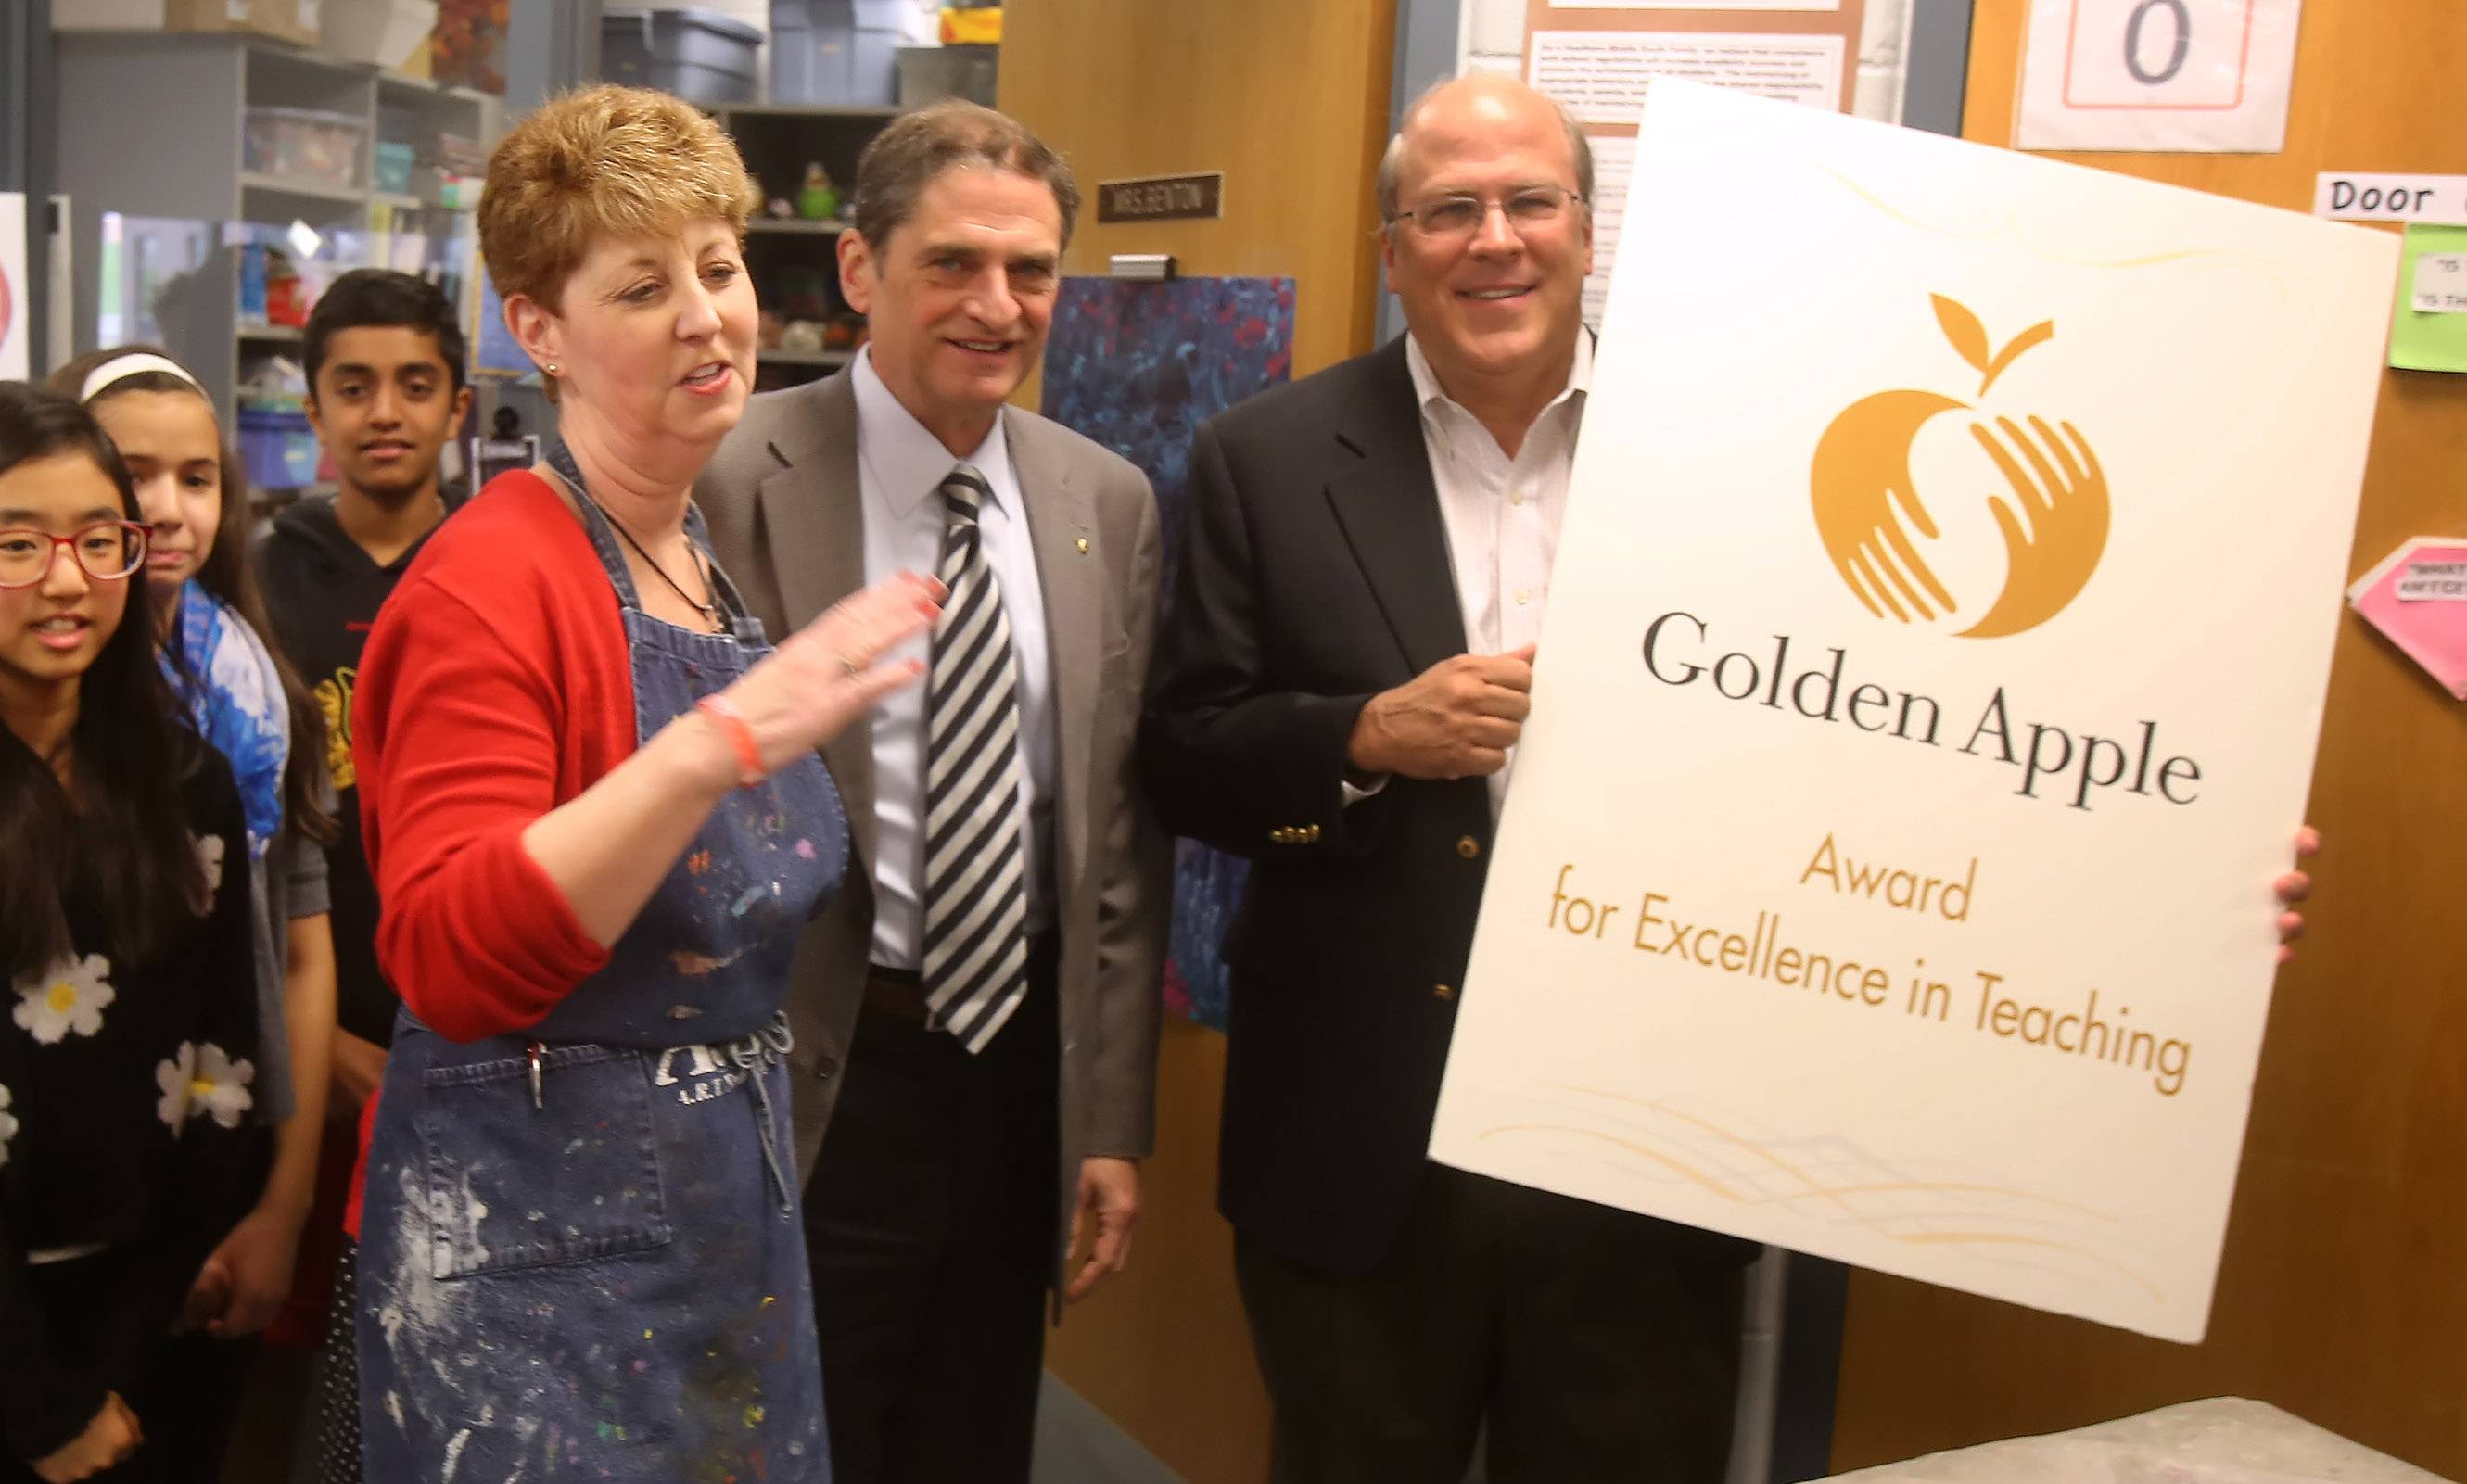 Golden Apple representatives Greg Salustro, left, and Franklin Morton present the Golden Apple Award for Excellence in Teaching to Hawthorn Middle School art teacher Mary Benton in her classroom Wednesday morning.